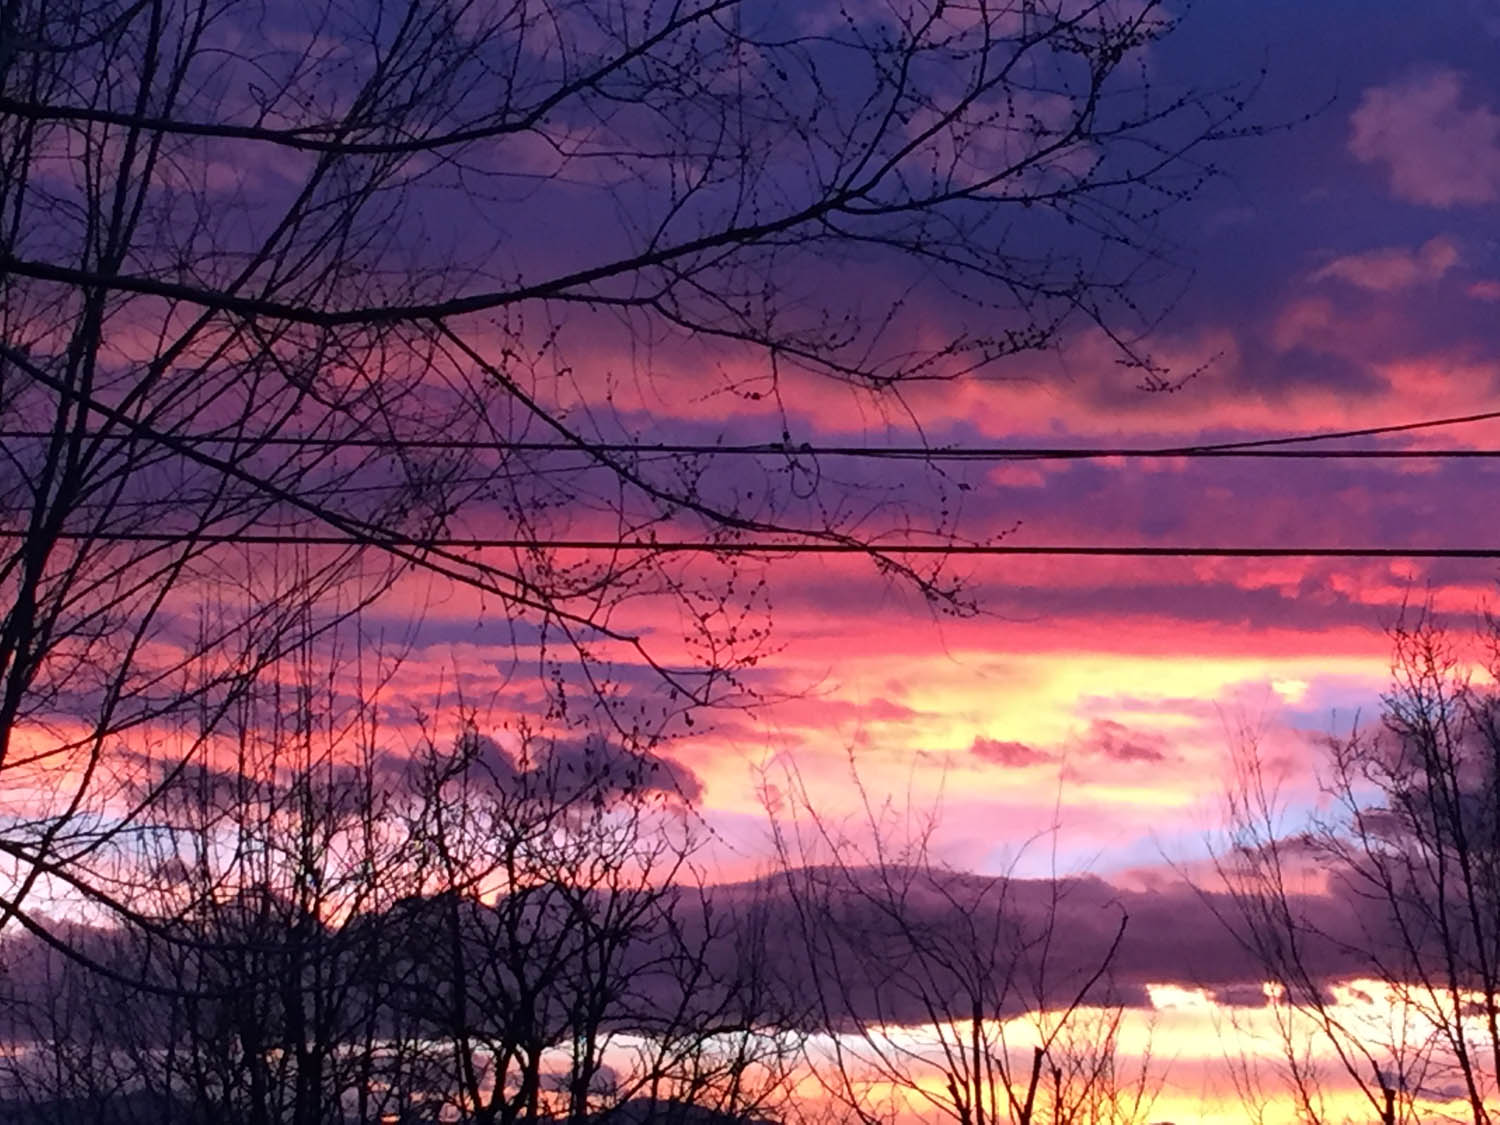 Sunset view from the backyard of Curtice Cottage in the late fall